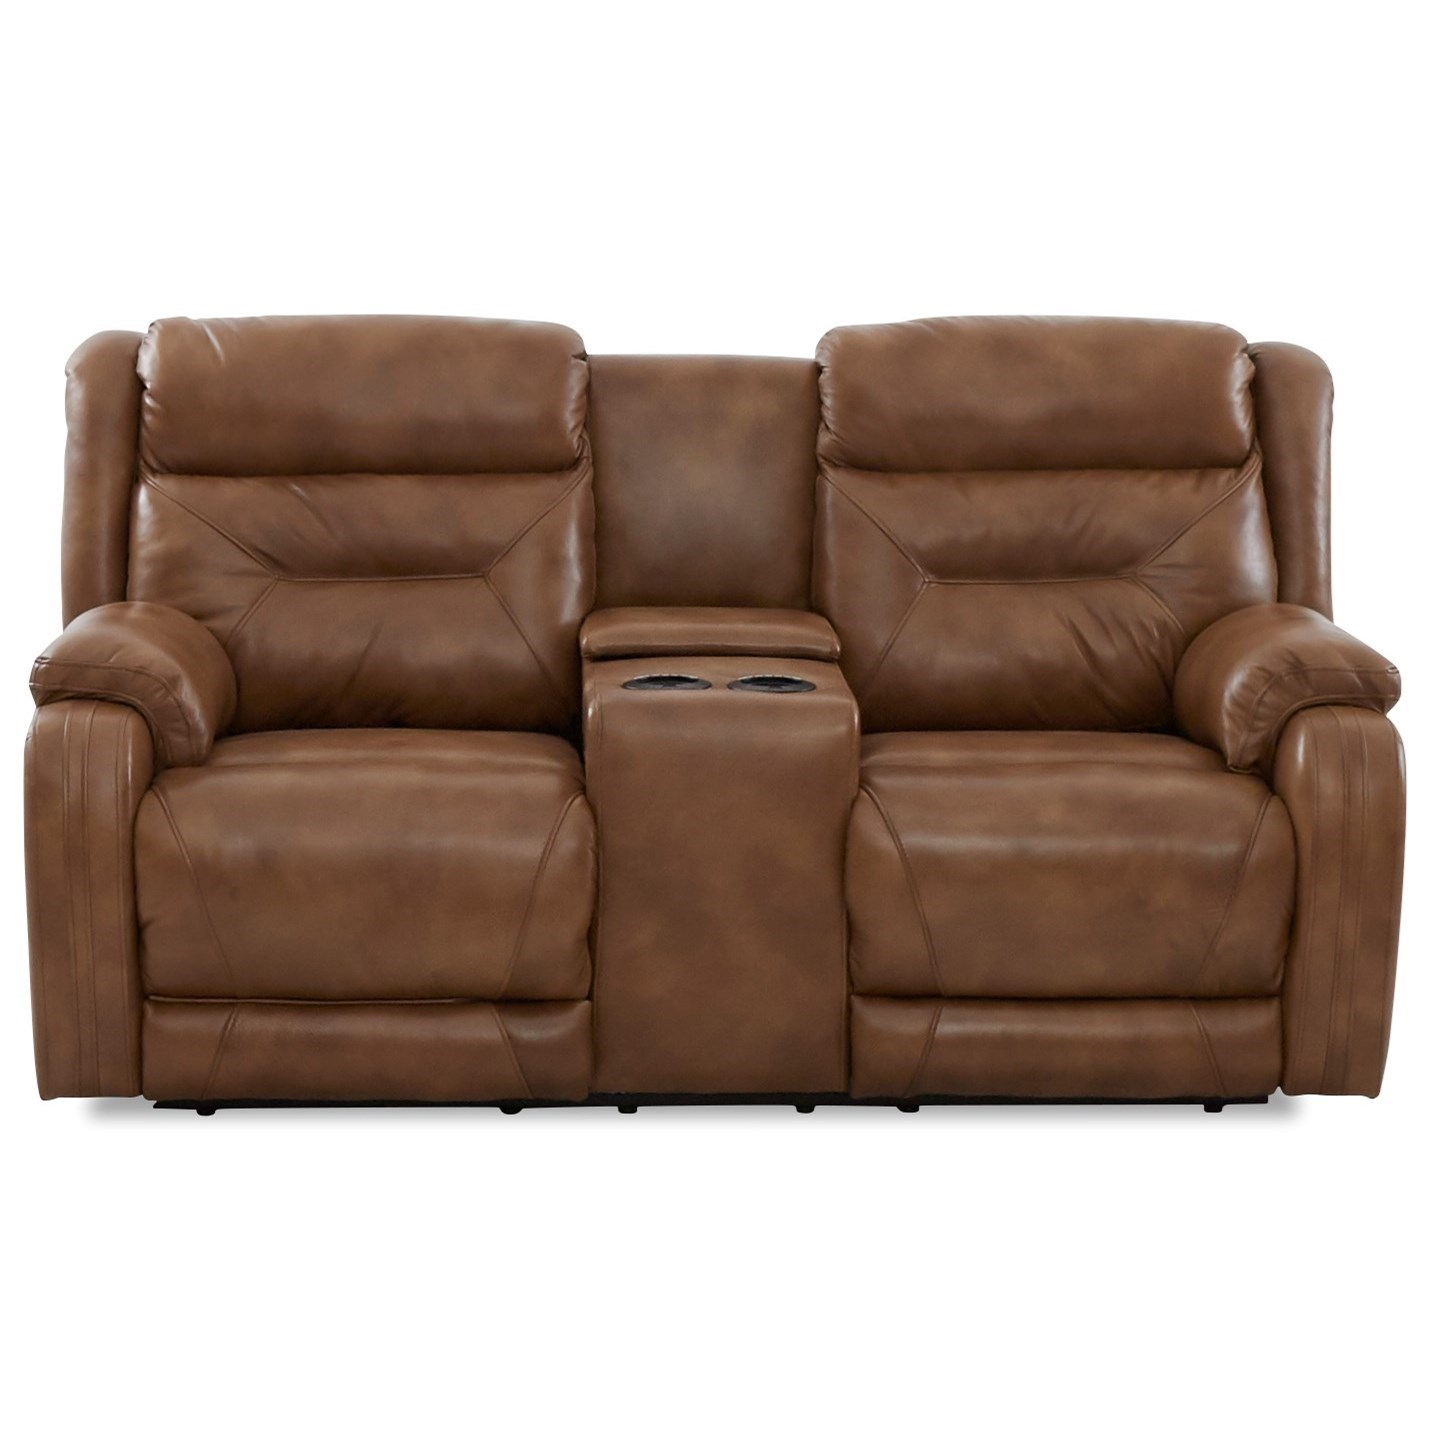 Power Reclining LS w/console